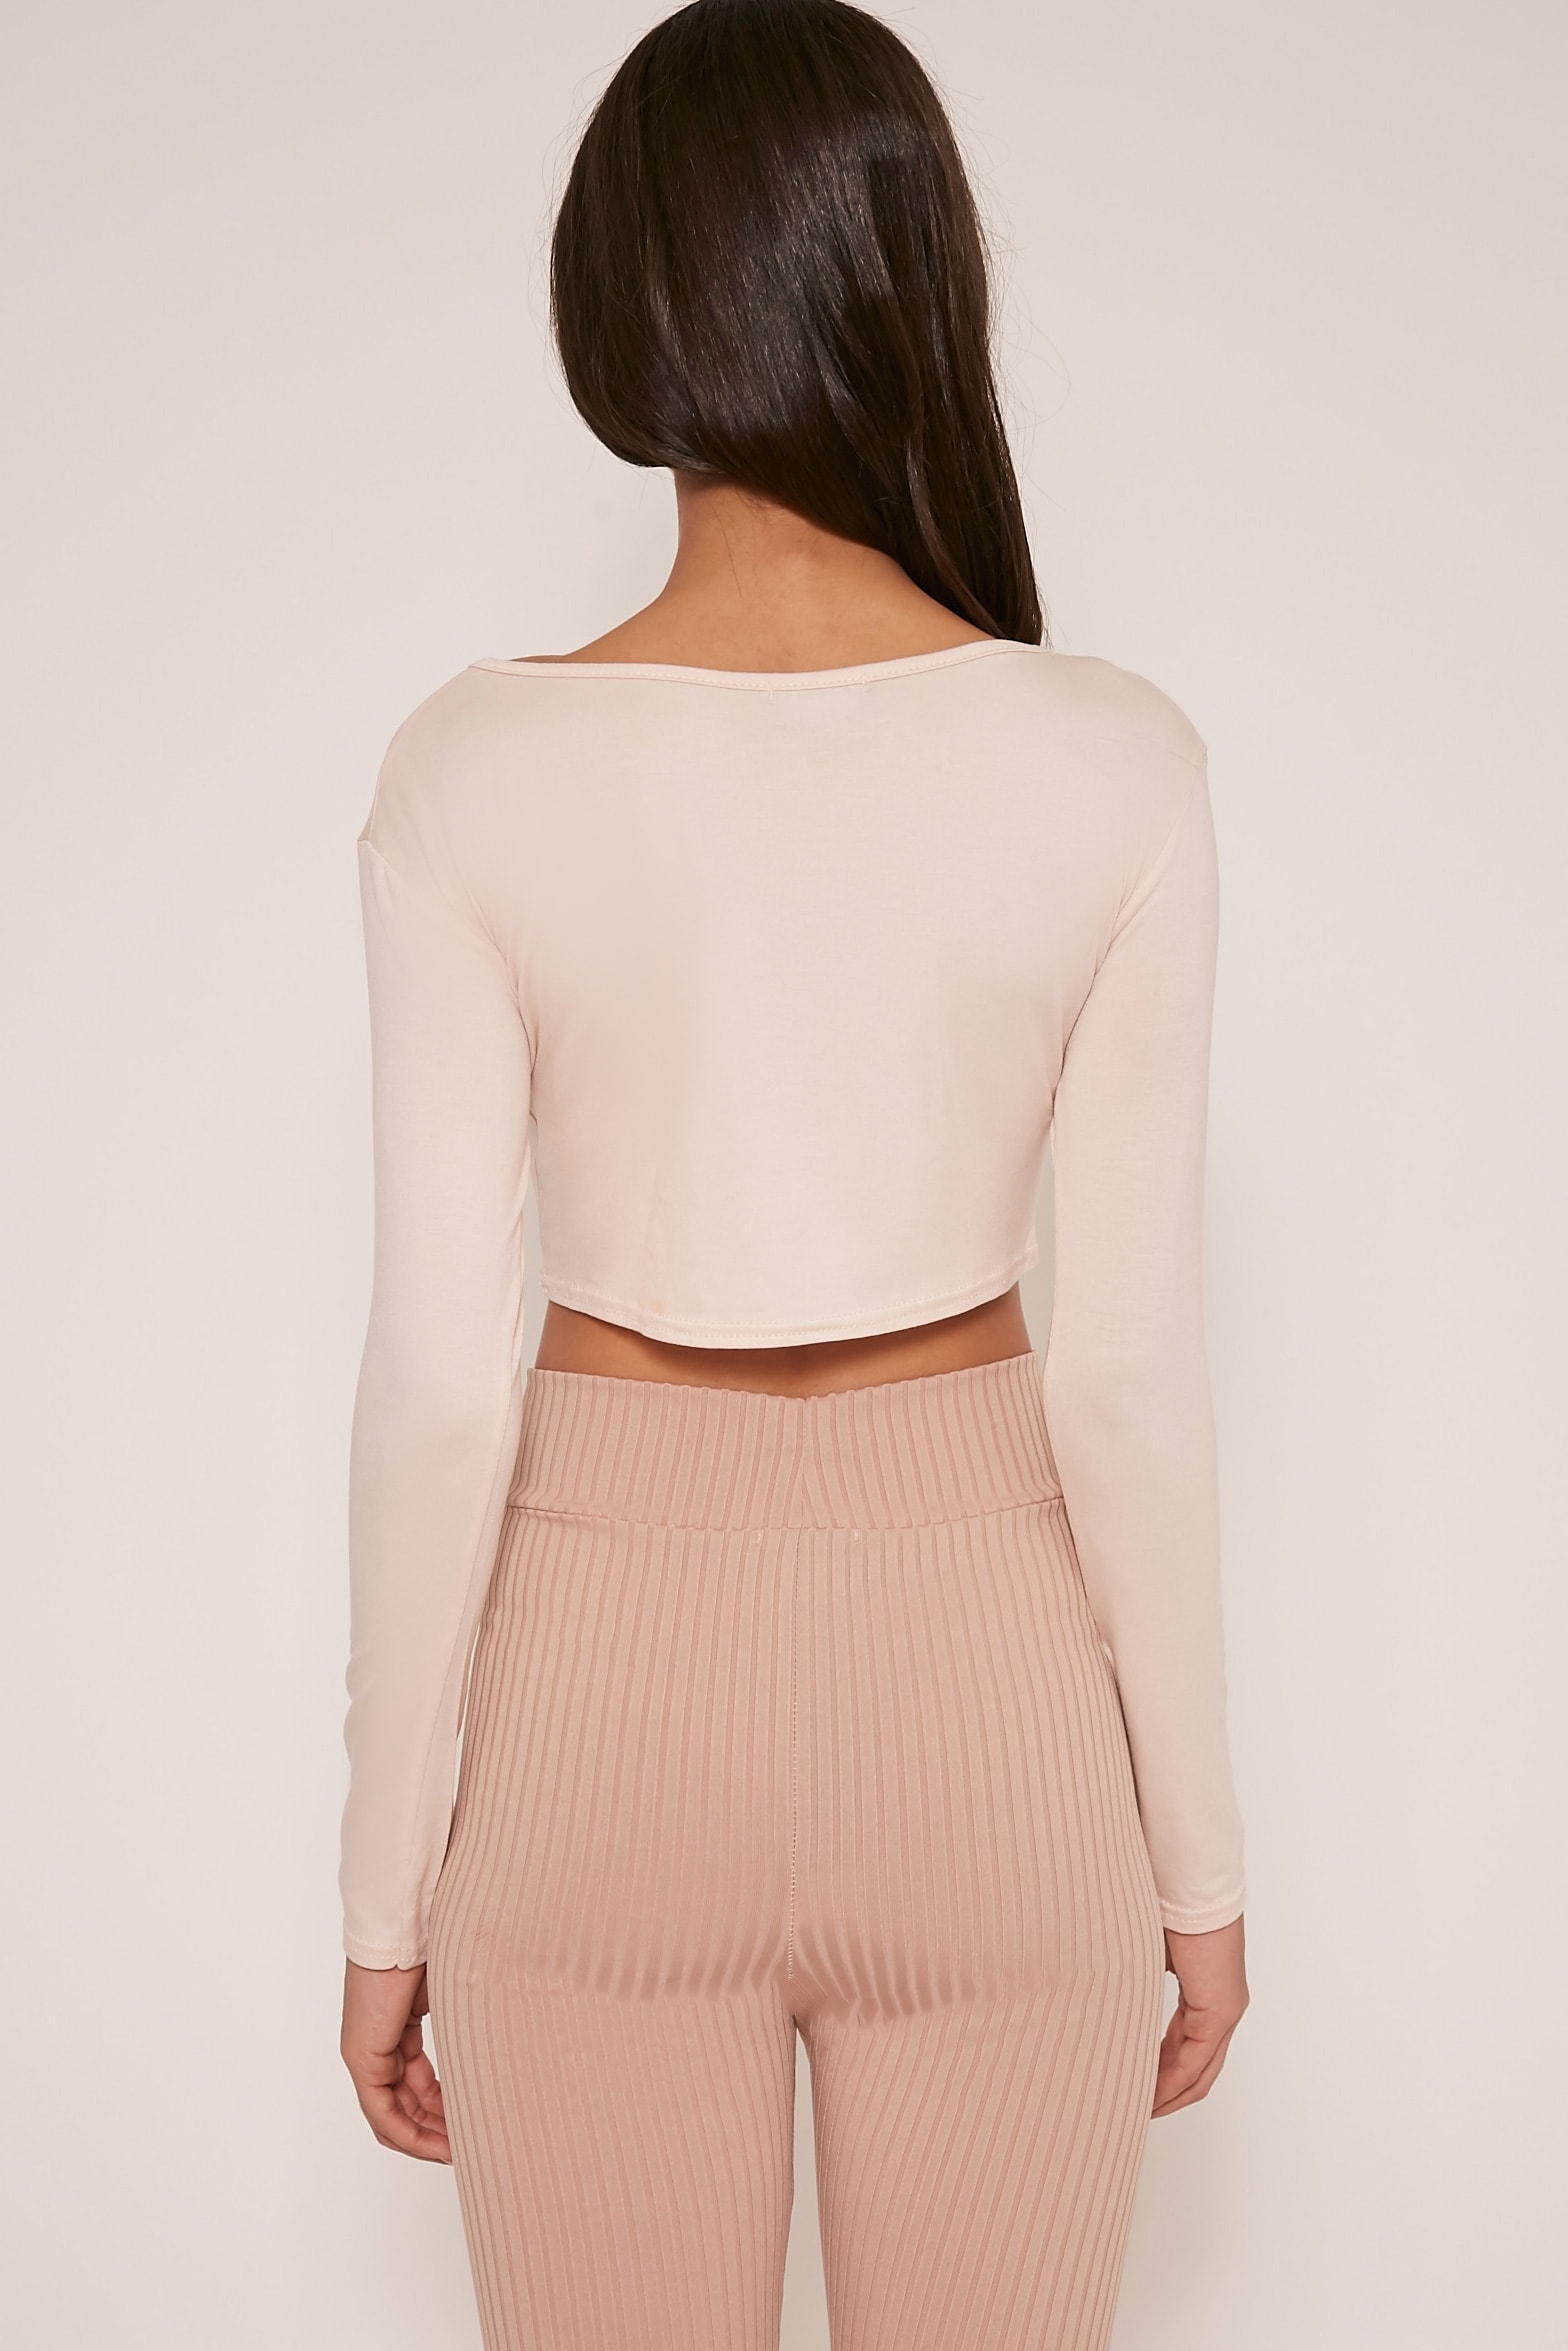 Basic Nude Long Sleeve Crop Top 4